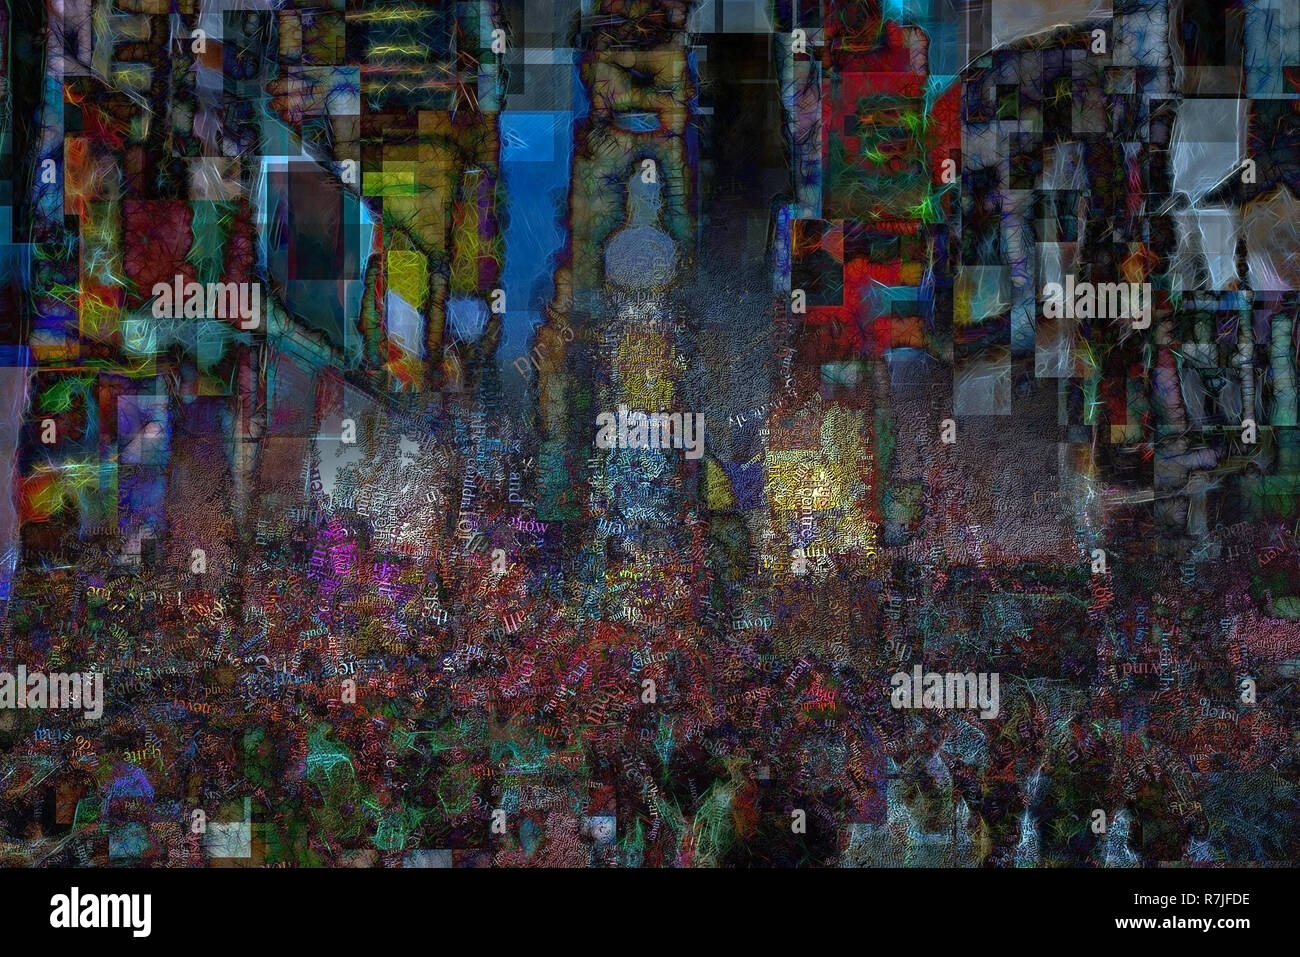 Times Square, surreal painting. Image composed of words. 3D rendering - Stock Image